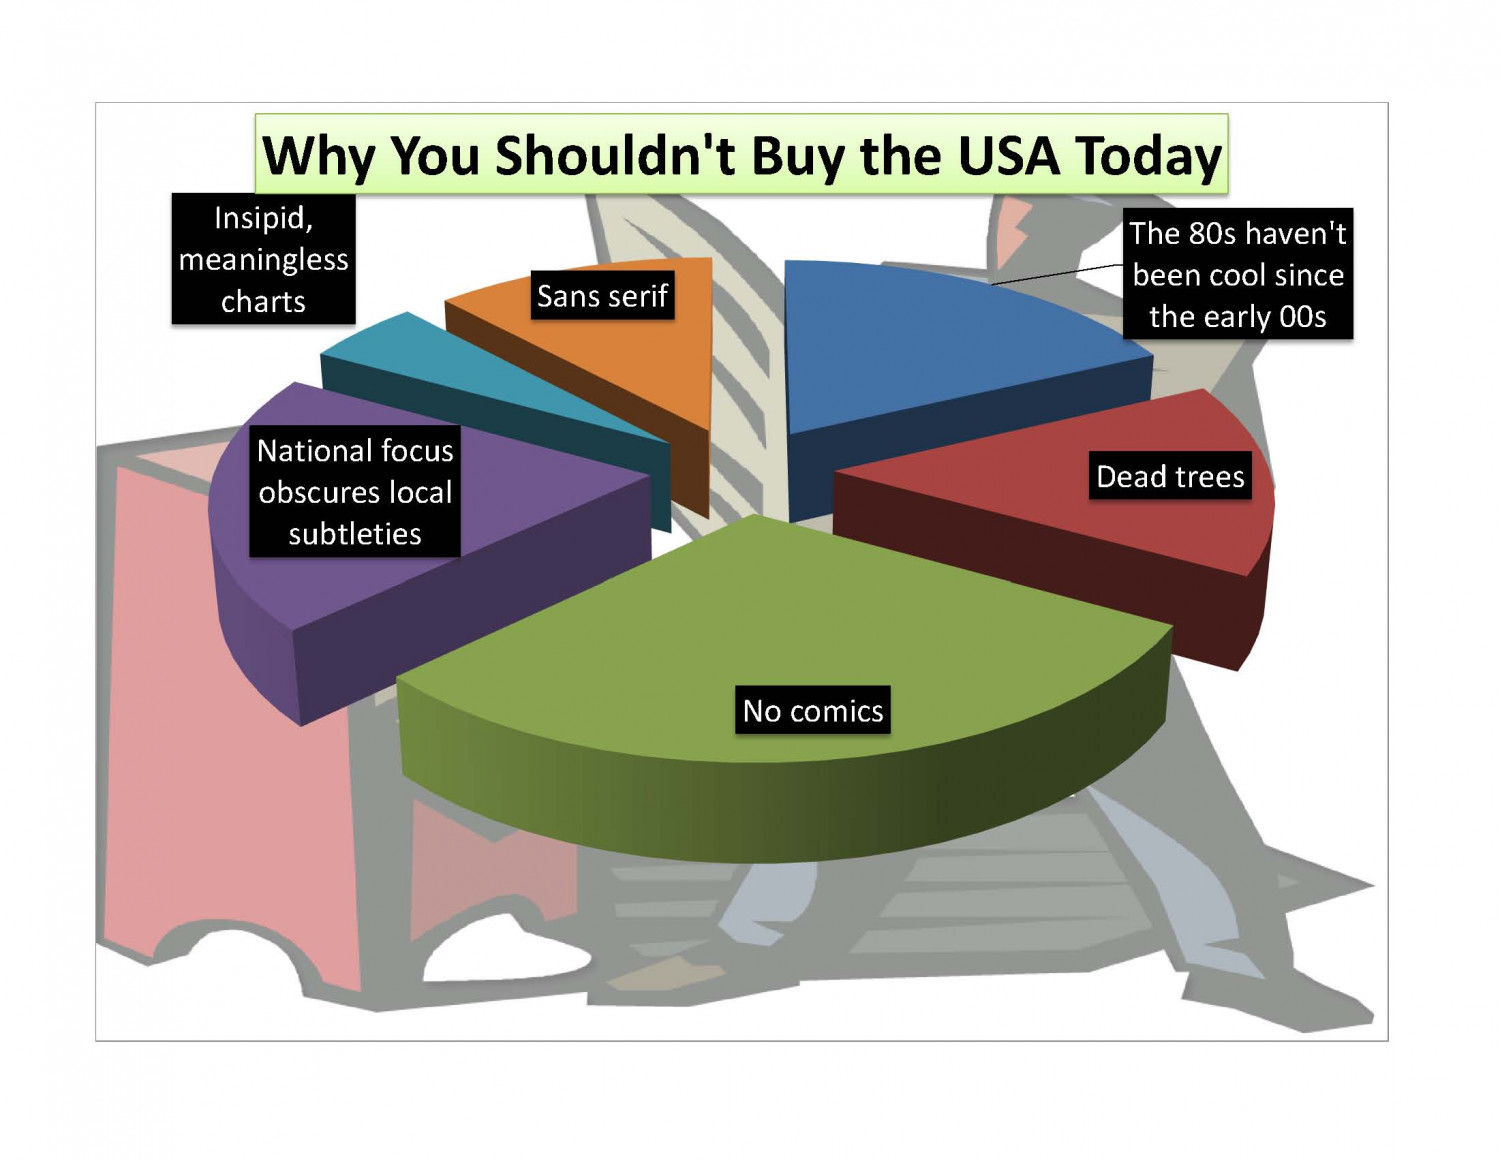 Why You Shouldn't Buy USA Today Infographic